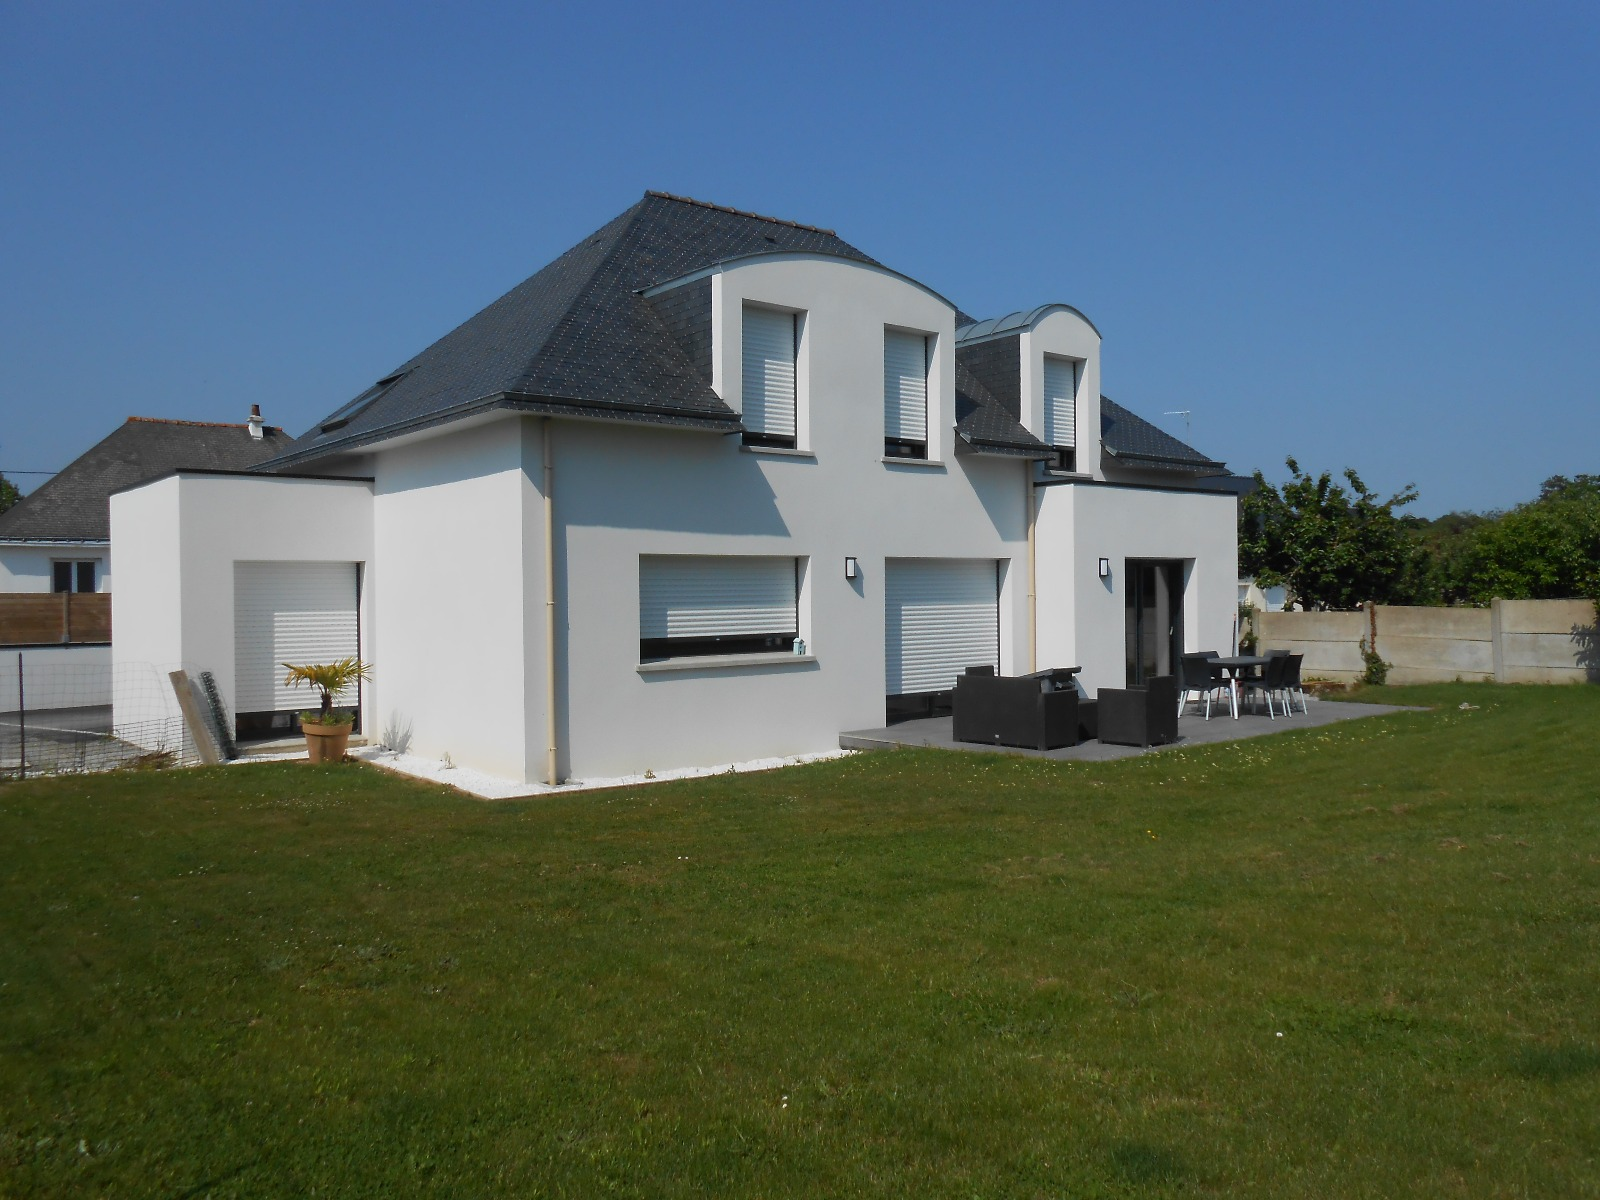 Achat traditionnelle theix en morbihan 56450 138m avec for Garage de theix